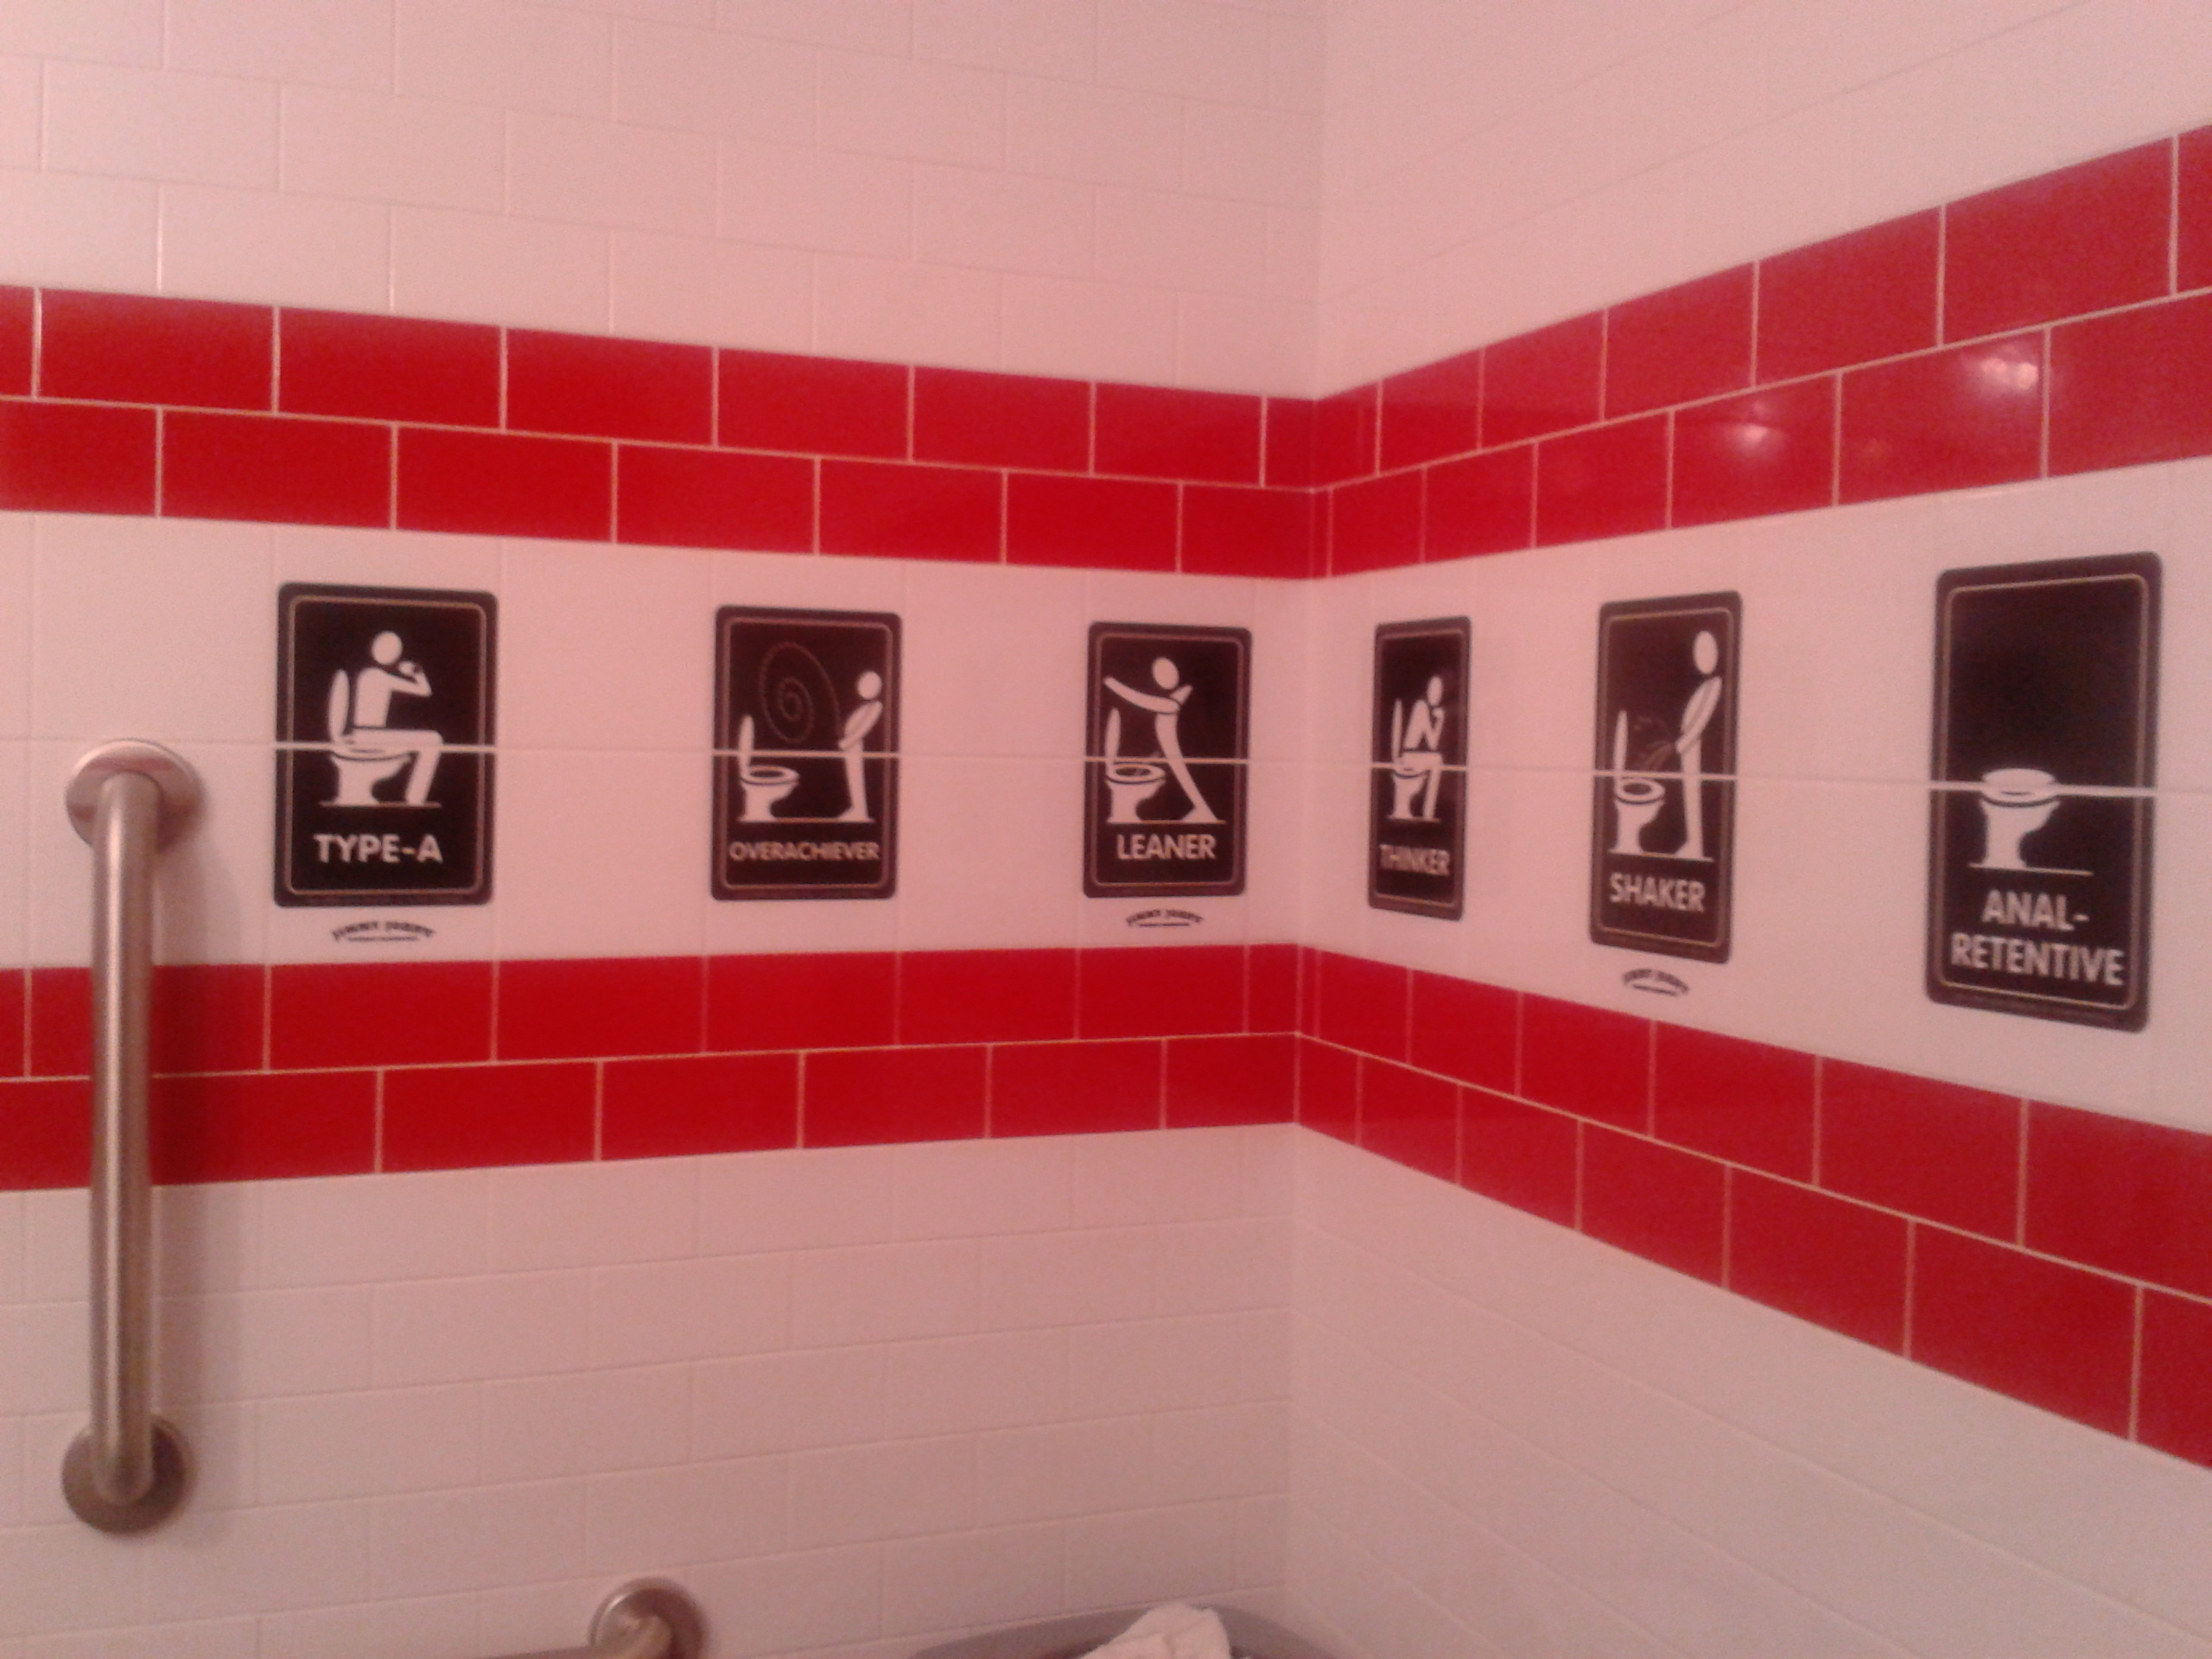 file:detail of bathroom decor at jimmy john's - wikimedia commons